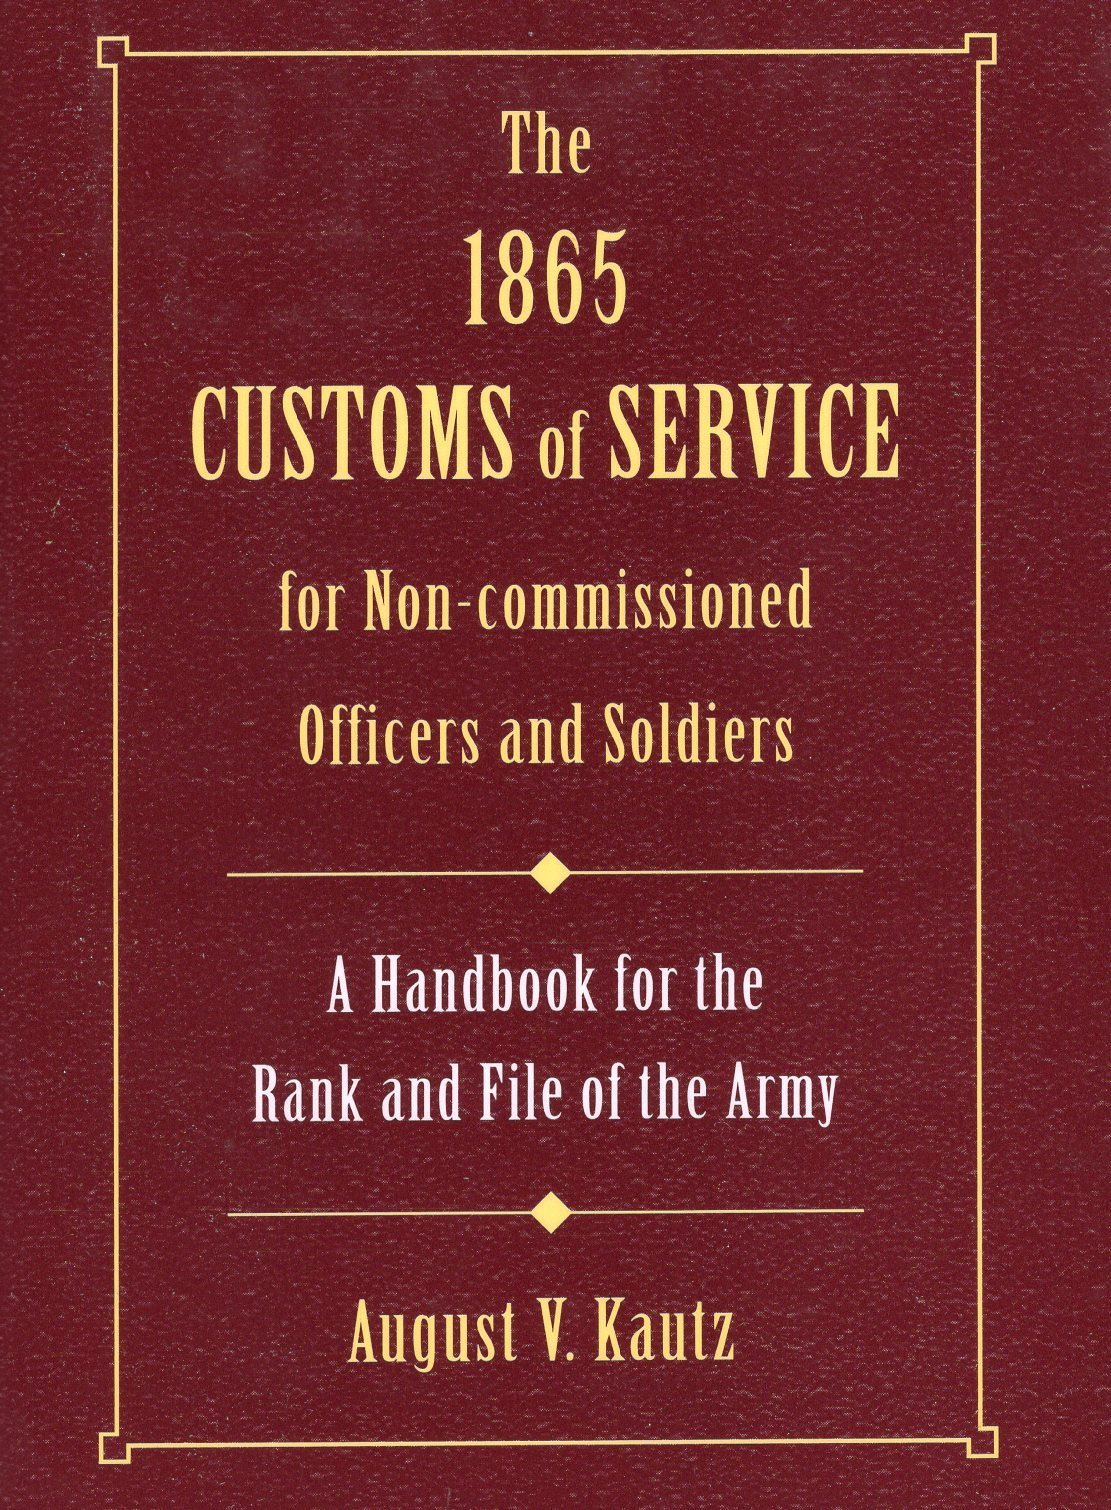 1865 Customs of Service for Non-Commissioned Officers & Soldiers, The: A  Handbook for the Rank and File of the Army: August Kautz: 0011557003994: ...